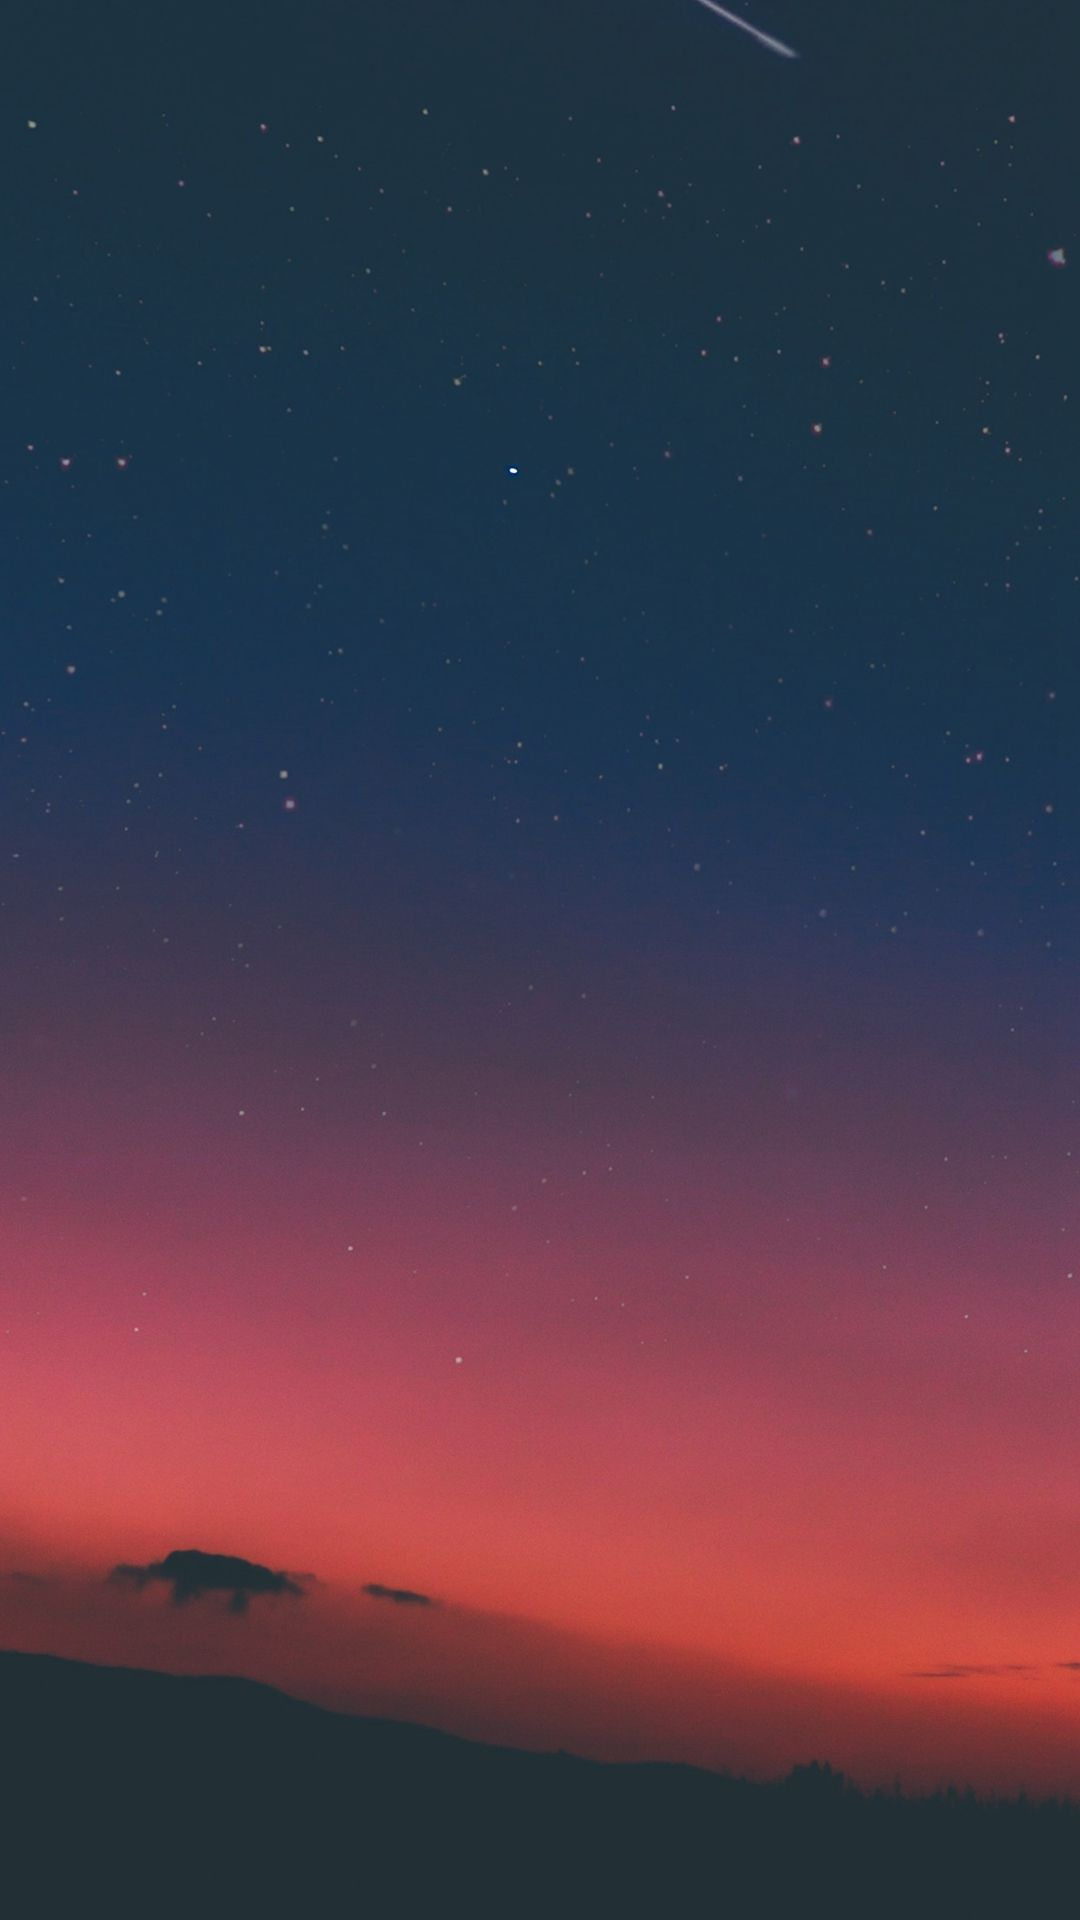 Free Download Night Sky Sunset Pink Nature Iphone 8